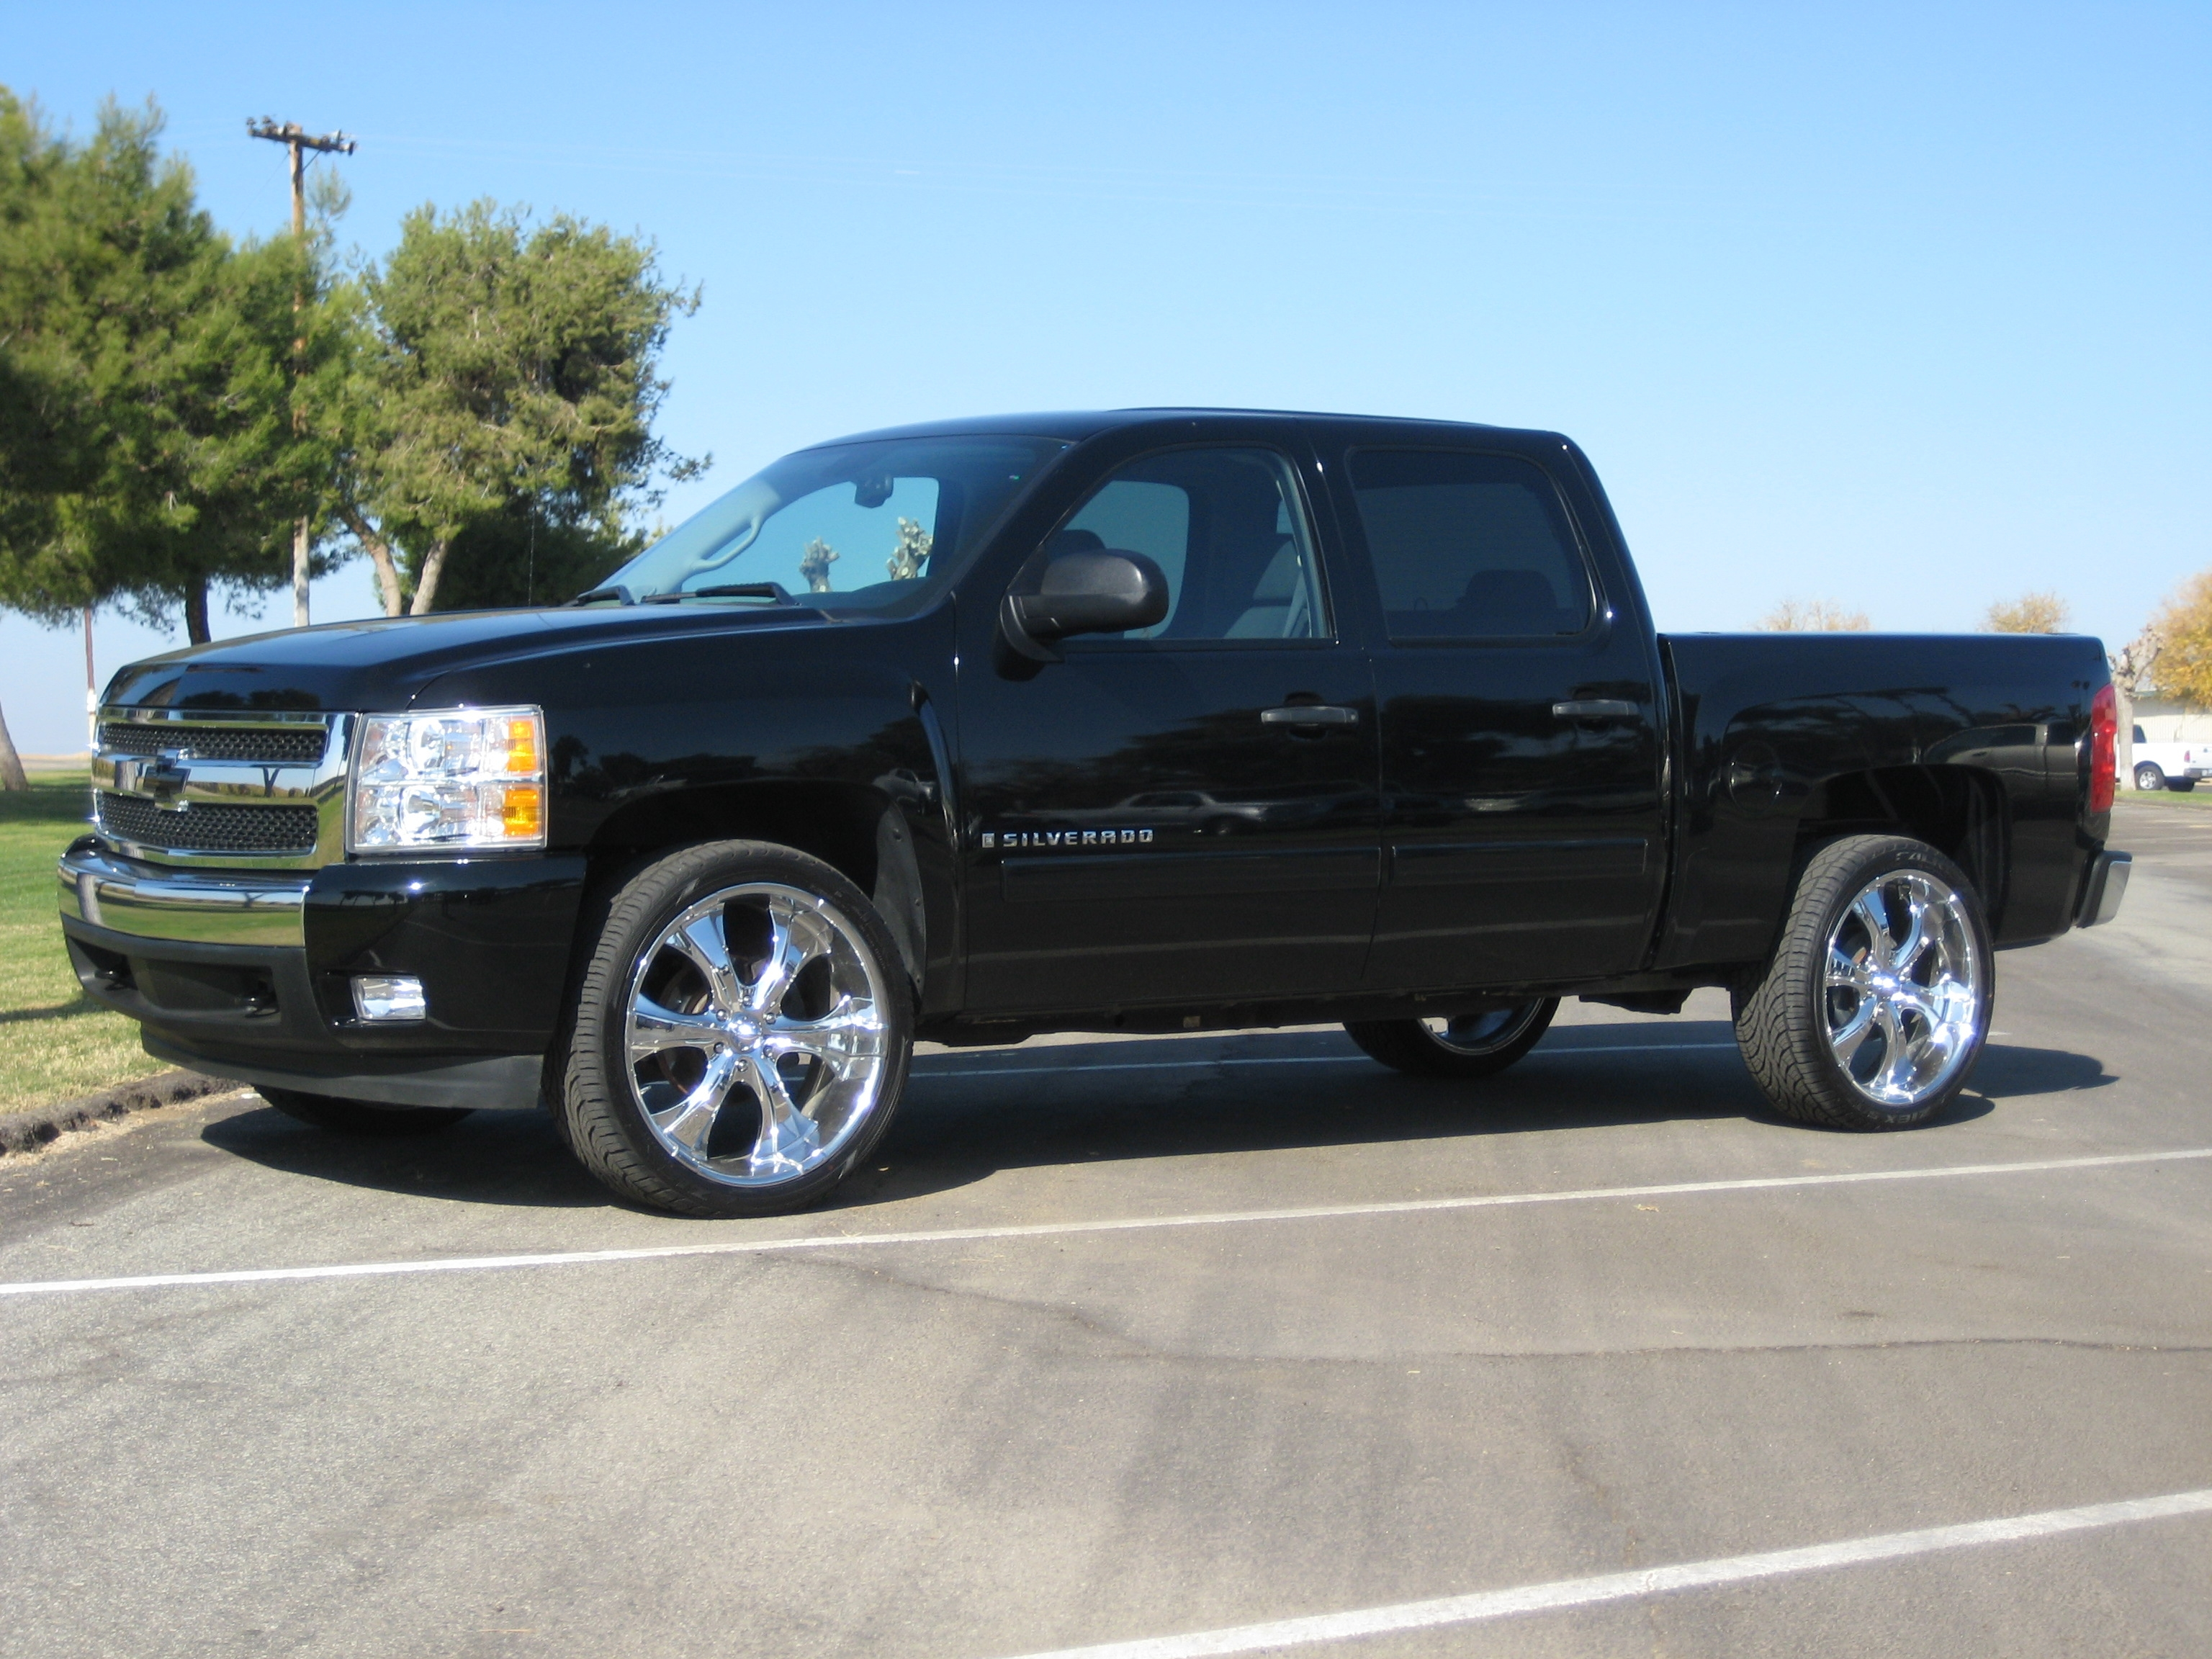 bigwood49 2008 Chevrolet Silverado 1500 Crew Cab Specs, Photos